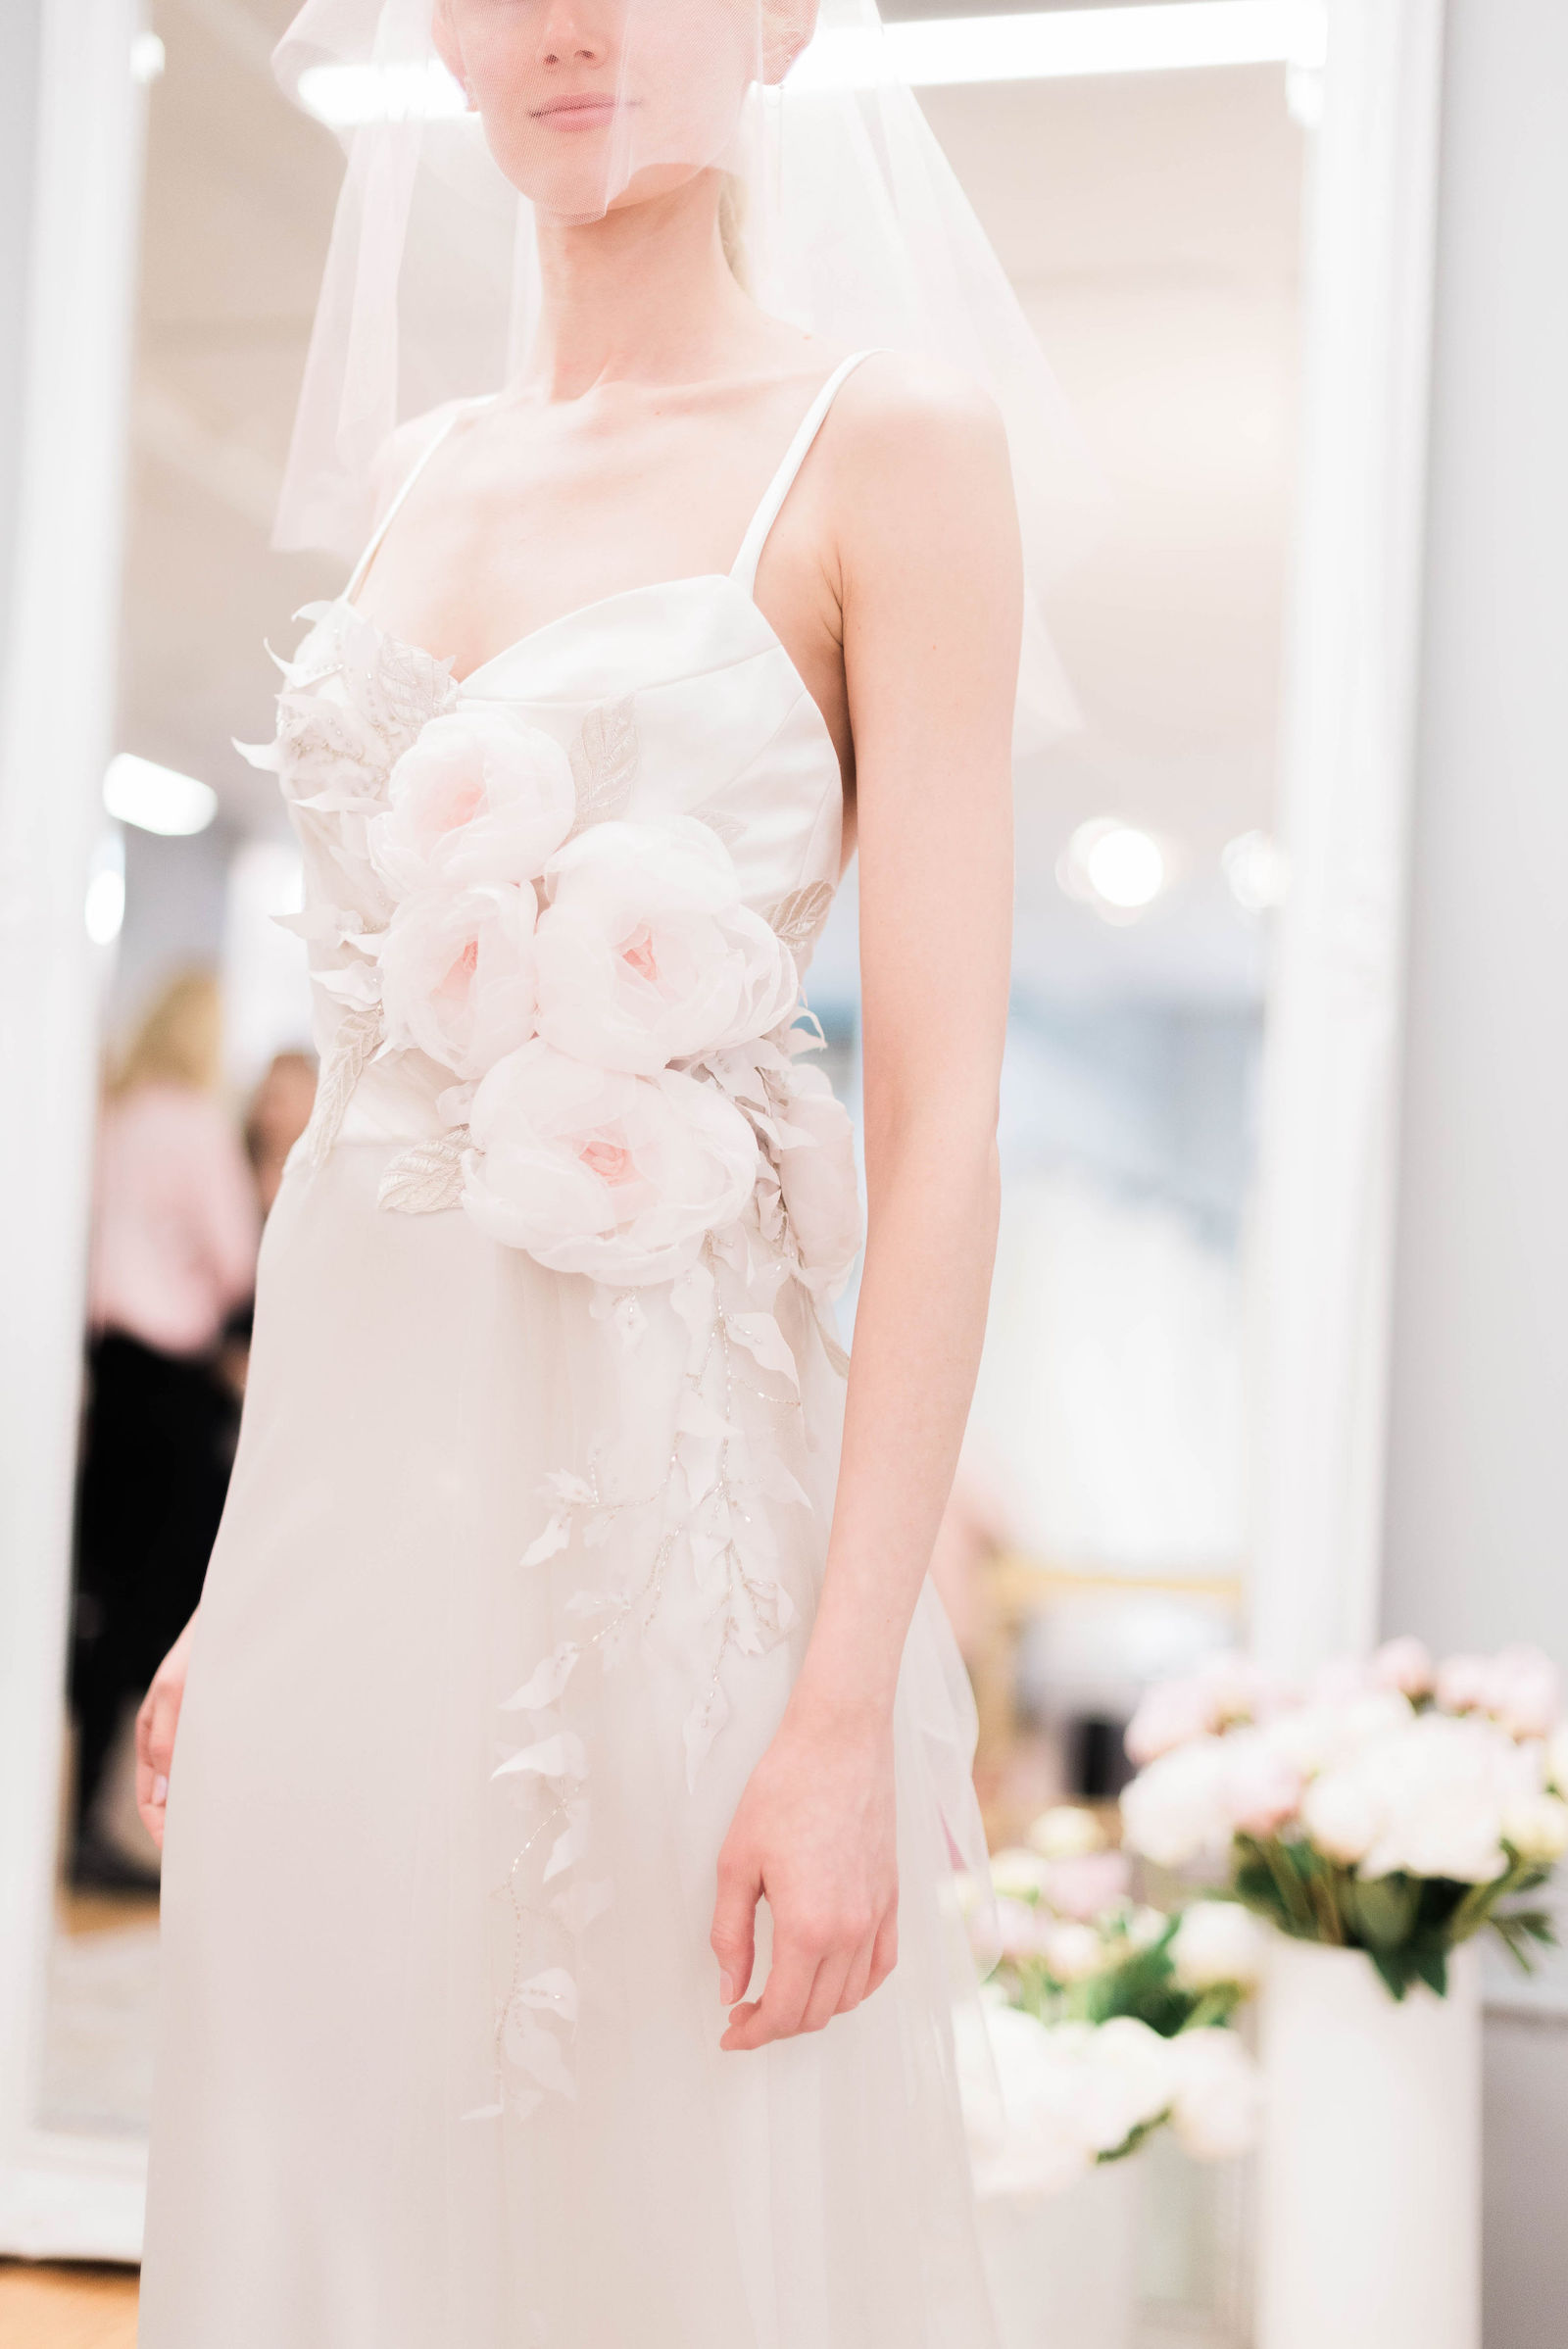 Oversized Details Spring 2020 Wedding Dress Trends Elizabeth Fillmore